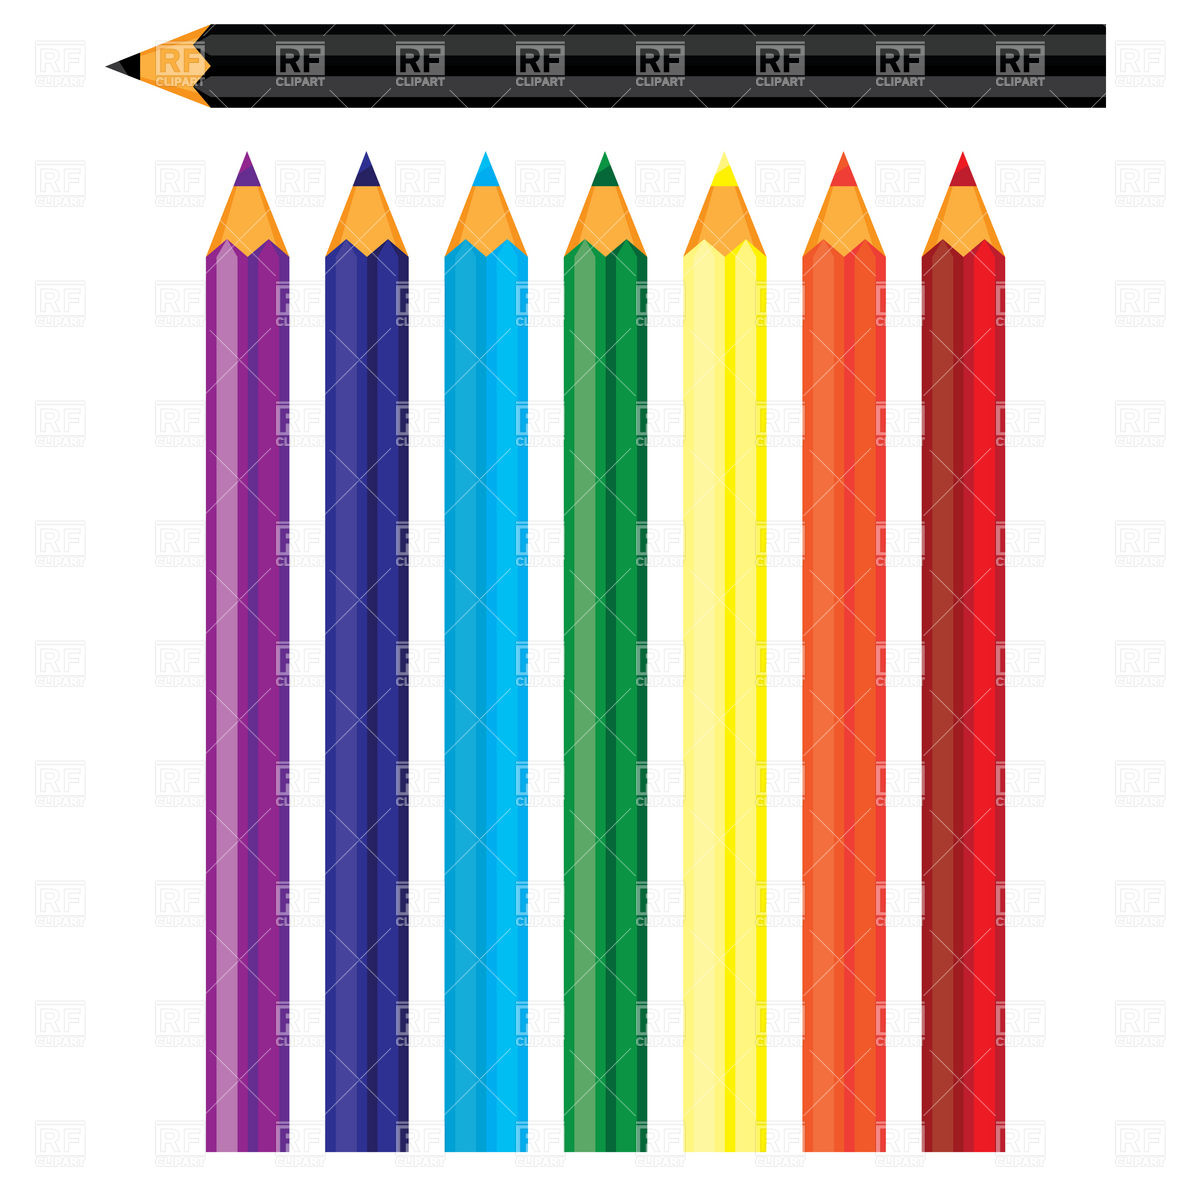 Colored pencil clipart at getdrawings free for personal use 1200x1200 coloured pencils royalty free vector clip art image voltagebd Images